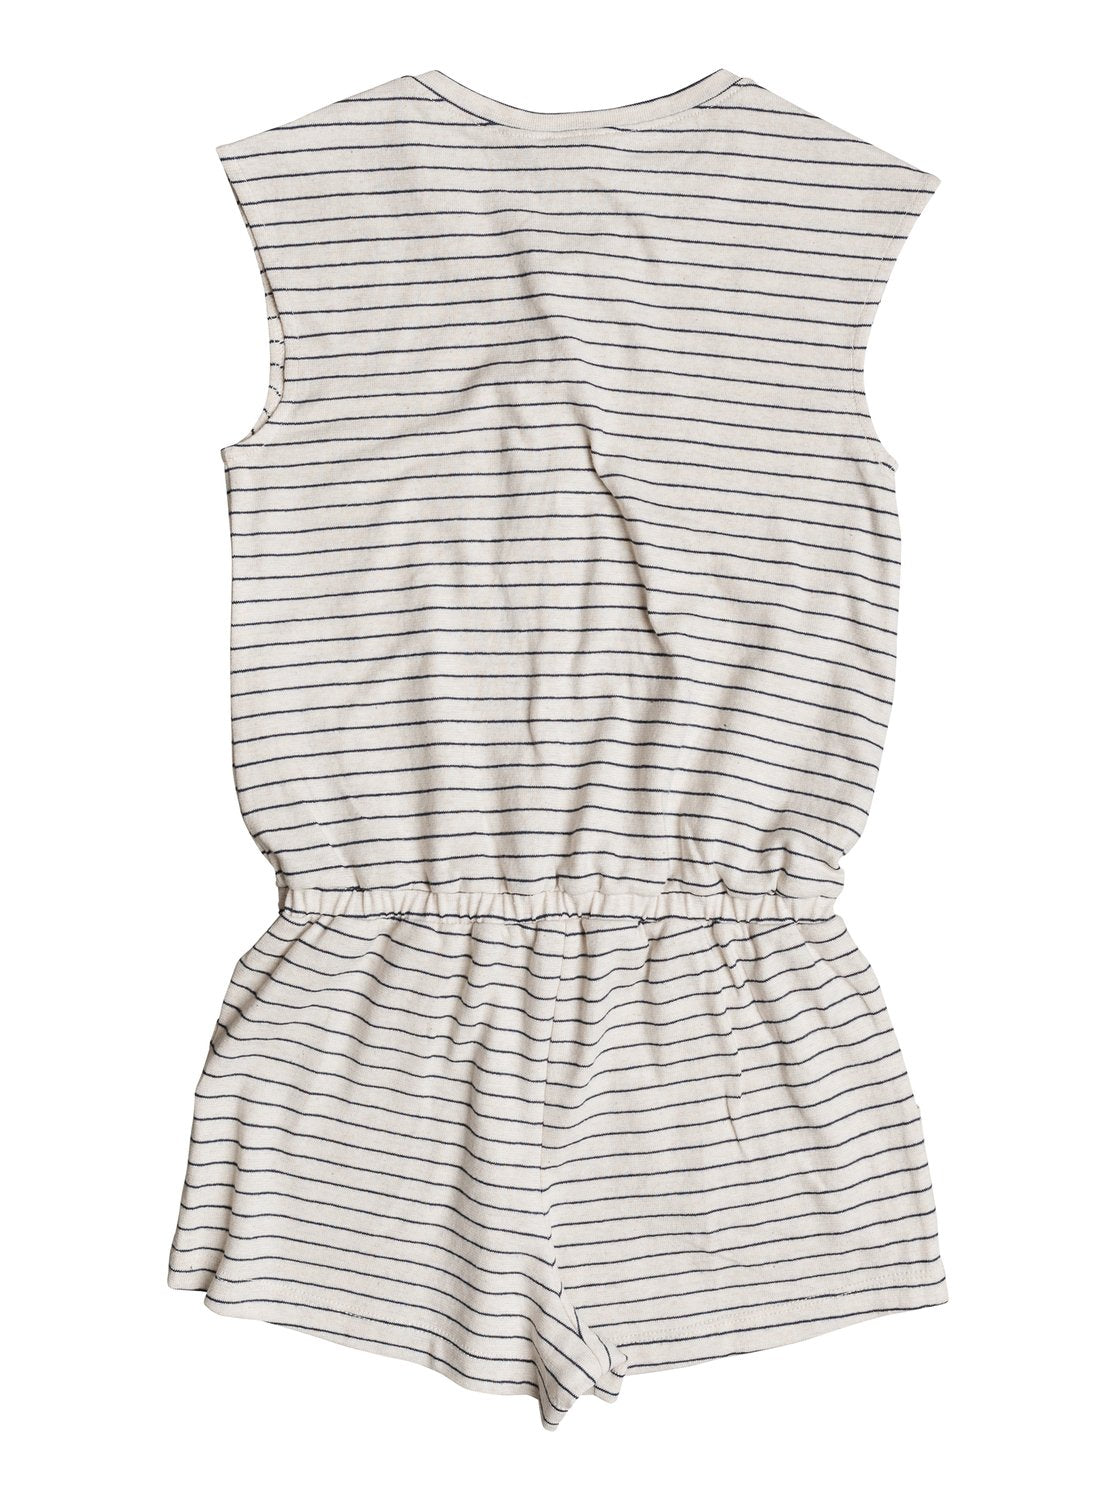 Roxy Girls Big Moments Romper In Metro Heather Thin Nautic Stripe